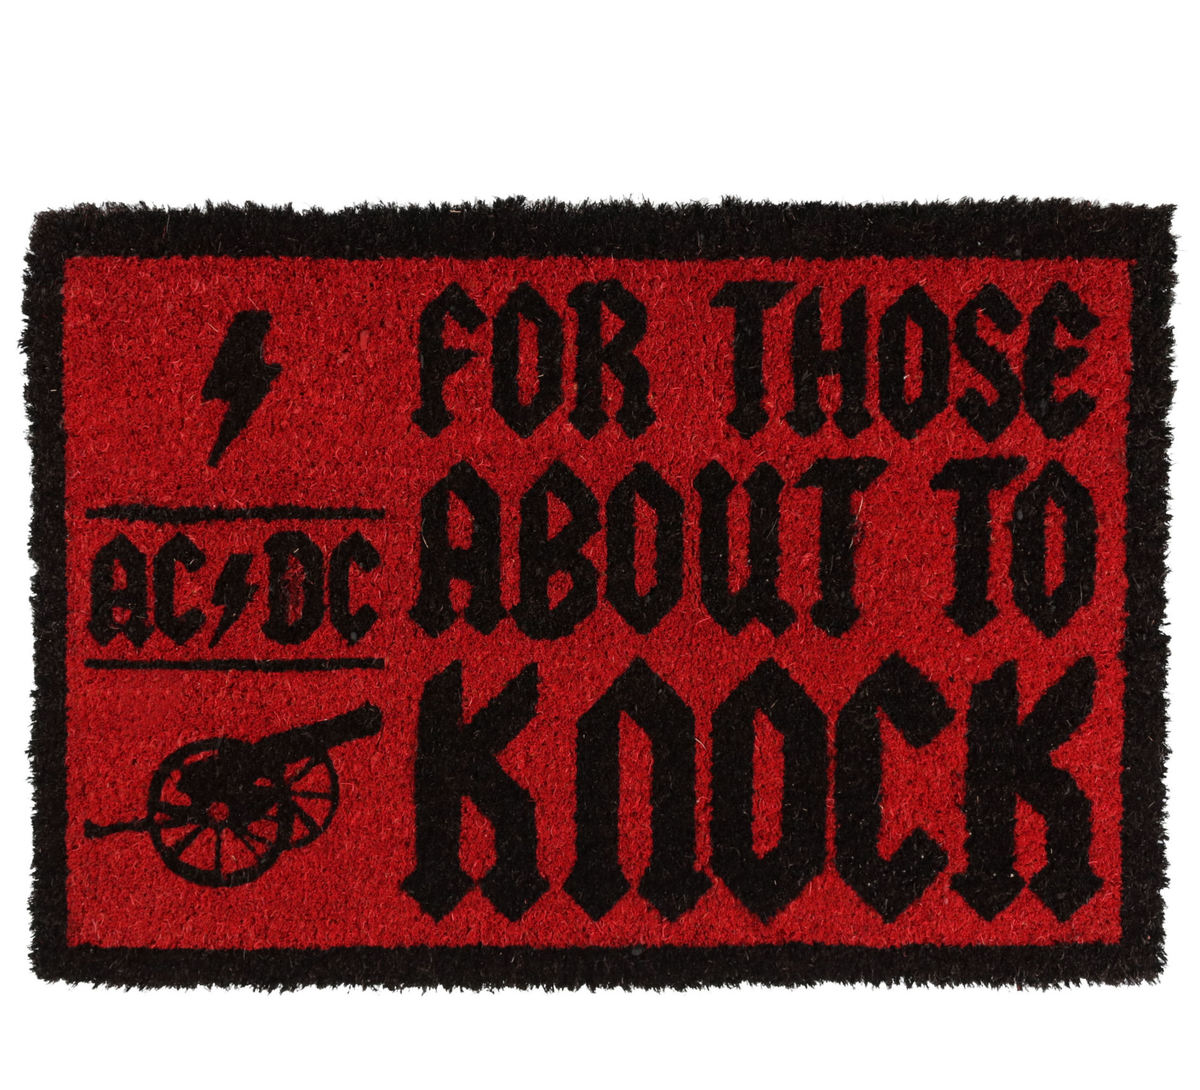 rohožka ACDC - (For Those About To Knock) - PYRAMID POSTERS - GP85128